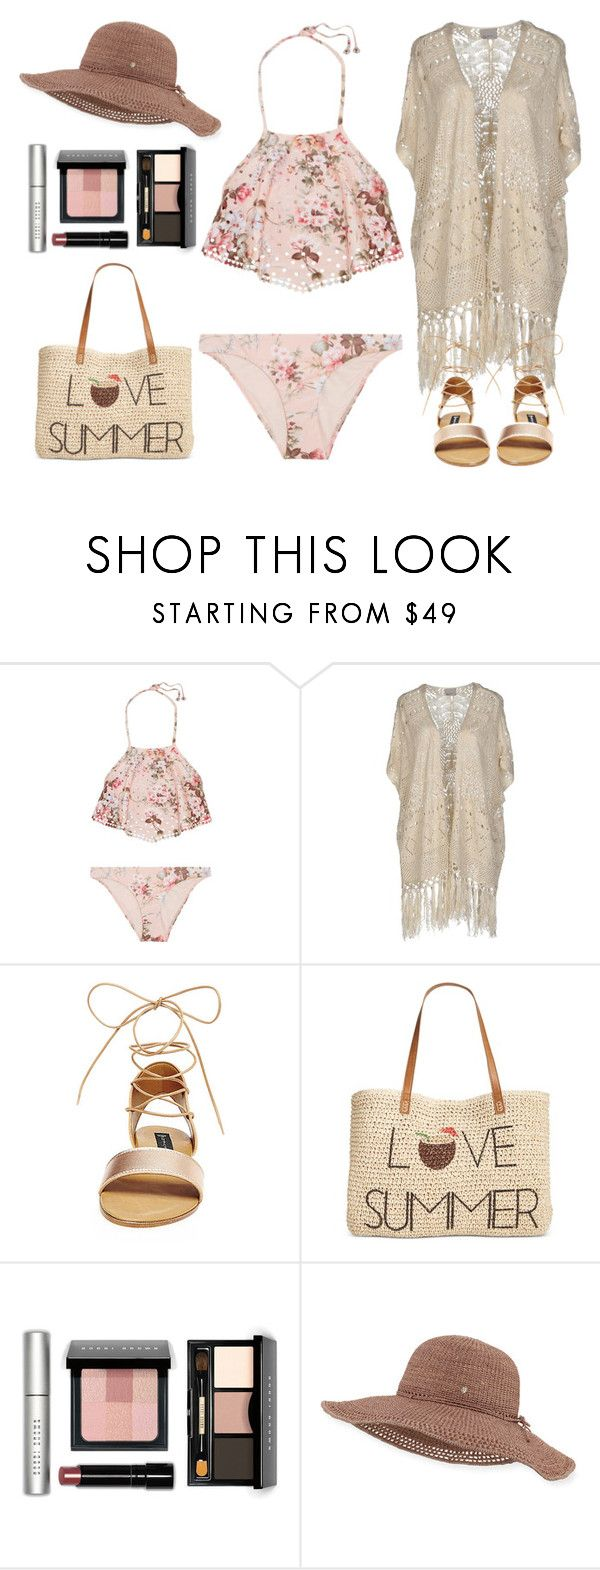 """""""Bikini Outfit in Pinks and Browns"""" by basicstarks ❤ liked on Polyvore featuring Zimmermann, Vero Moda, Steve Madden, Style & Co., Bobbi Brown Cosmetics and Helen Kaminski"""